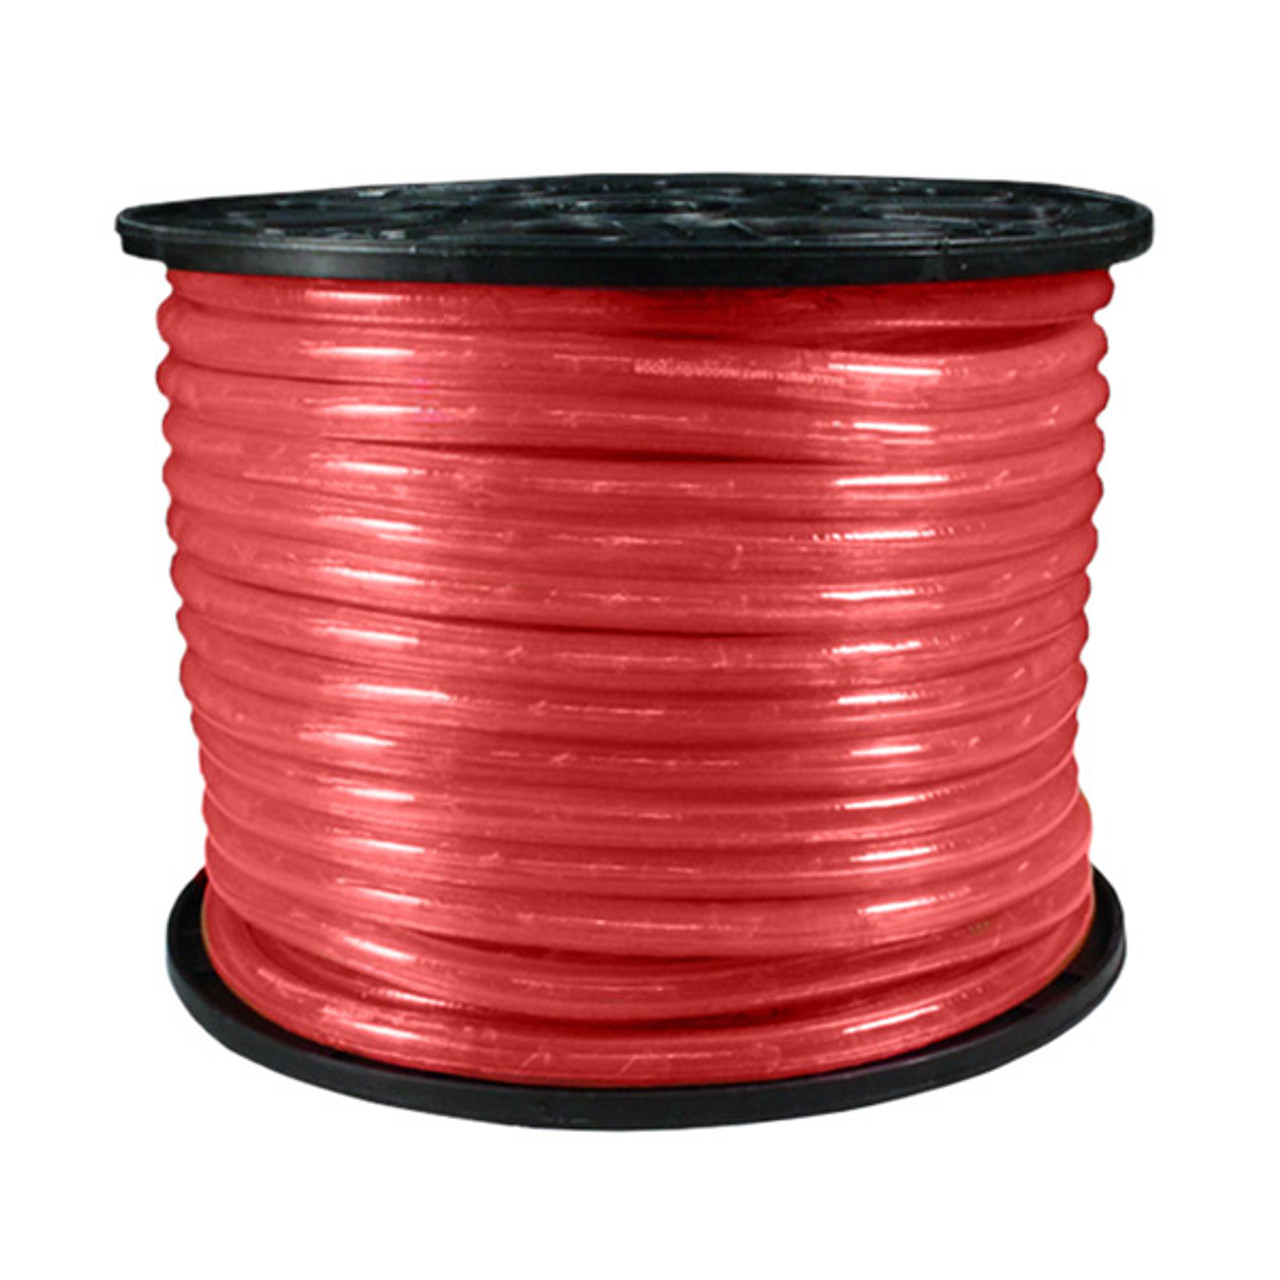 38 steady burn rope light by crown actionlighting 38 2 wire incandescent rope light aloadofball Choice Image